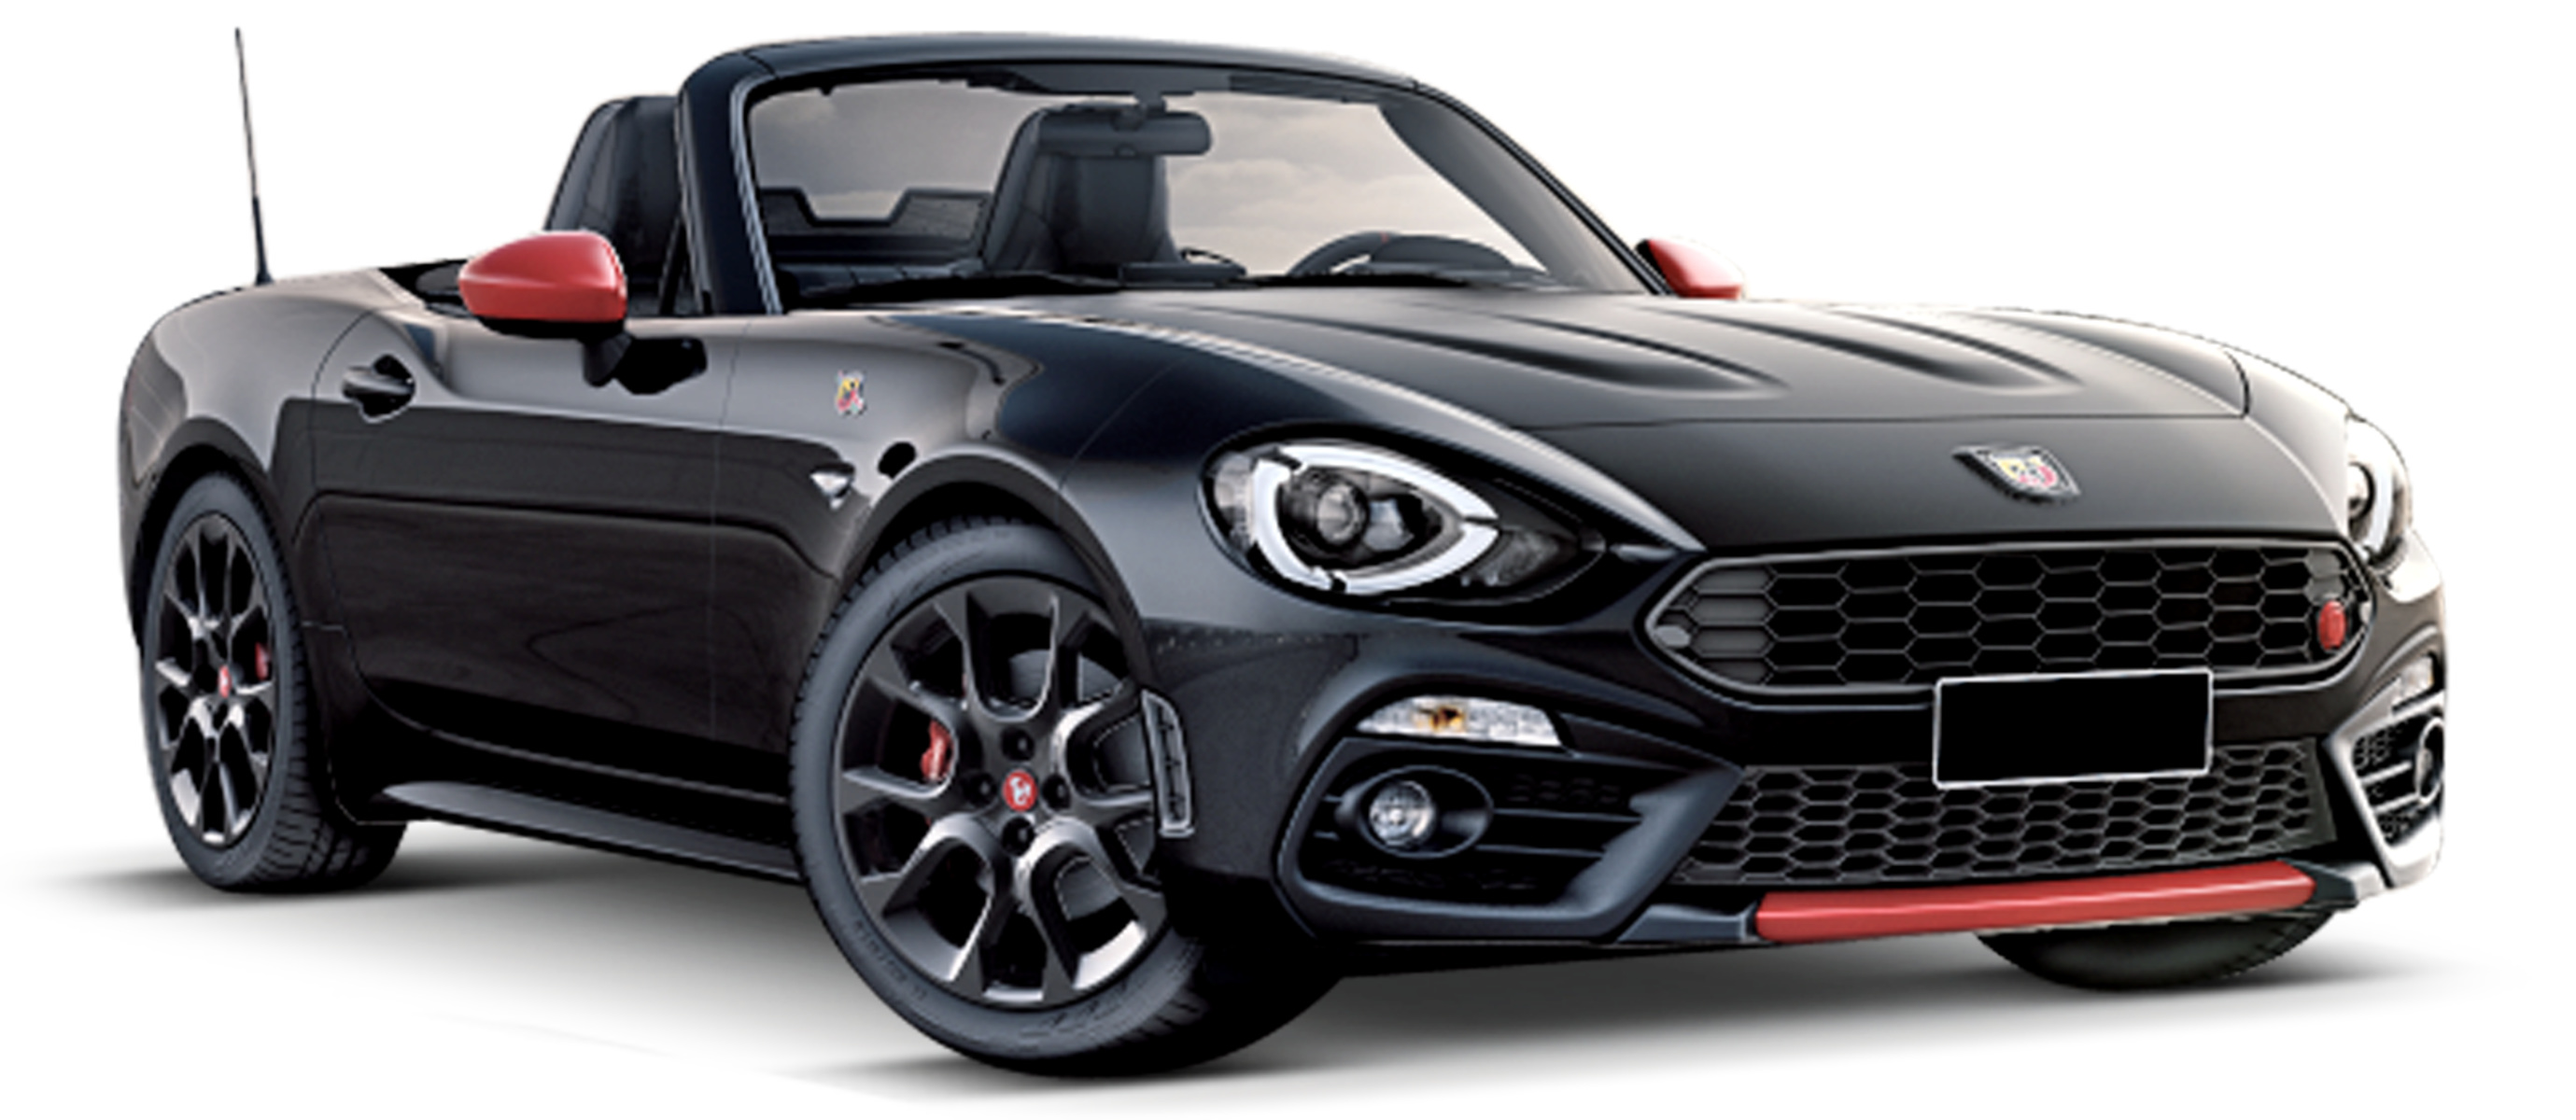 listino abarth 124 spider prezzo scheda tecnica consumi foto. Black Bedroom Furniture Sets. Home Design Ideas